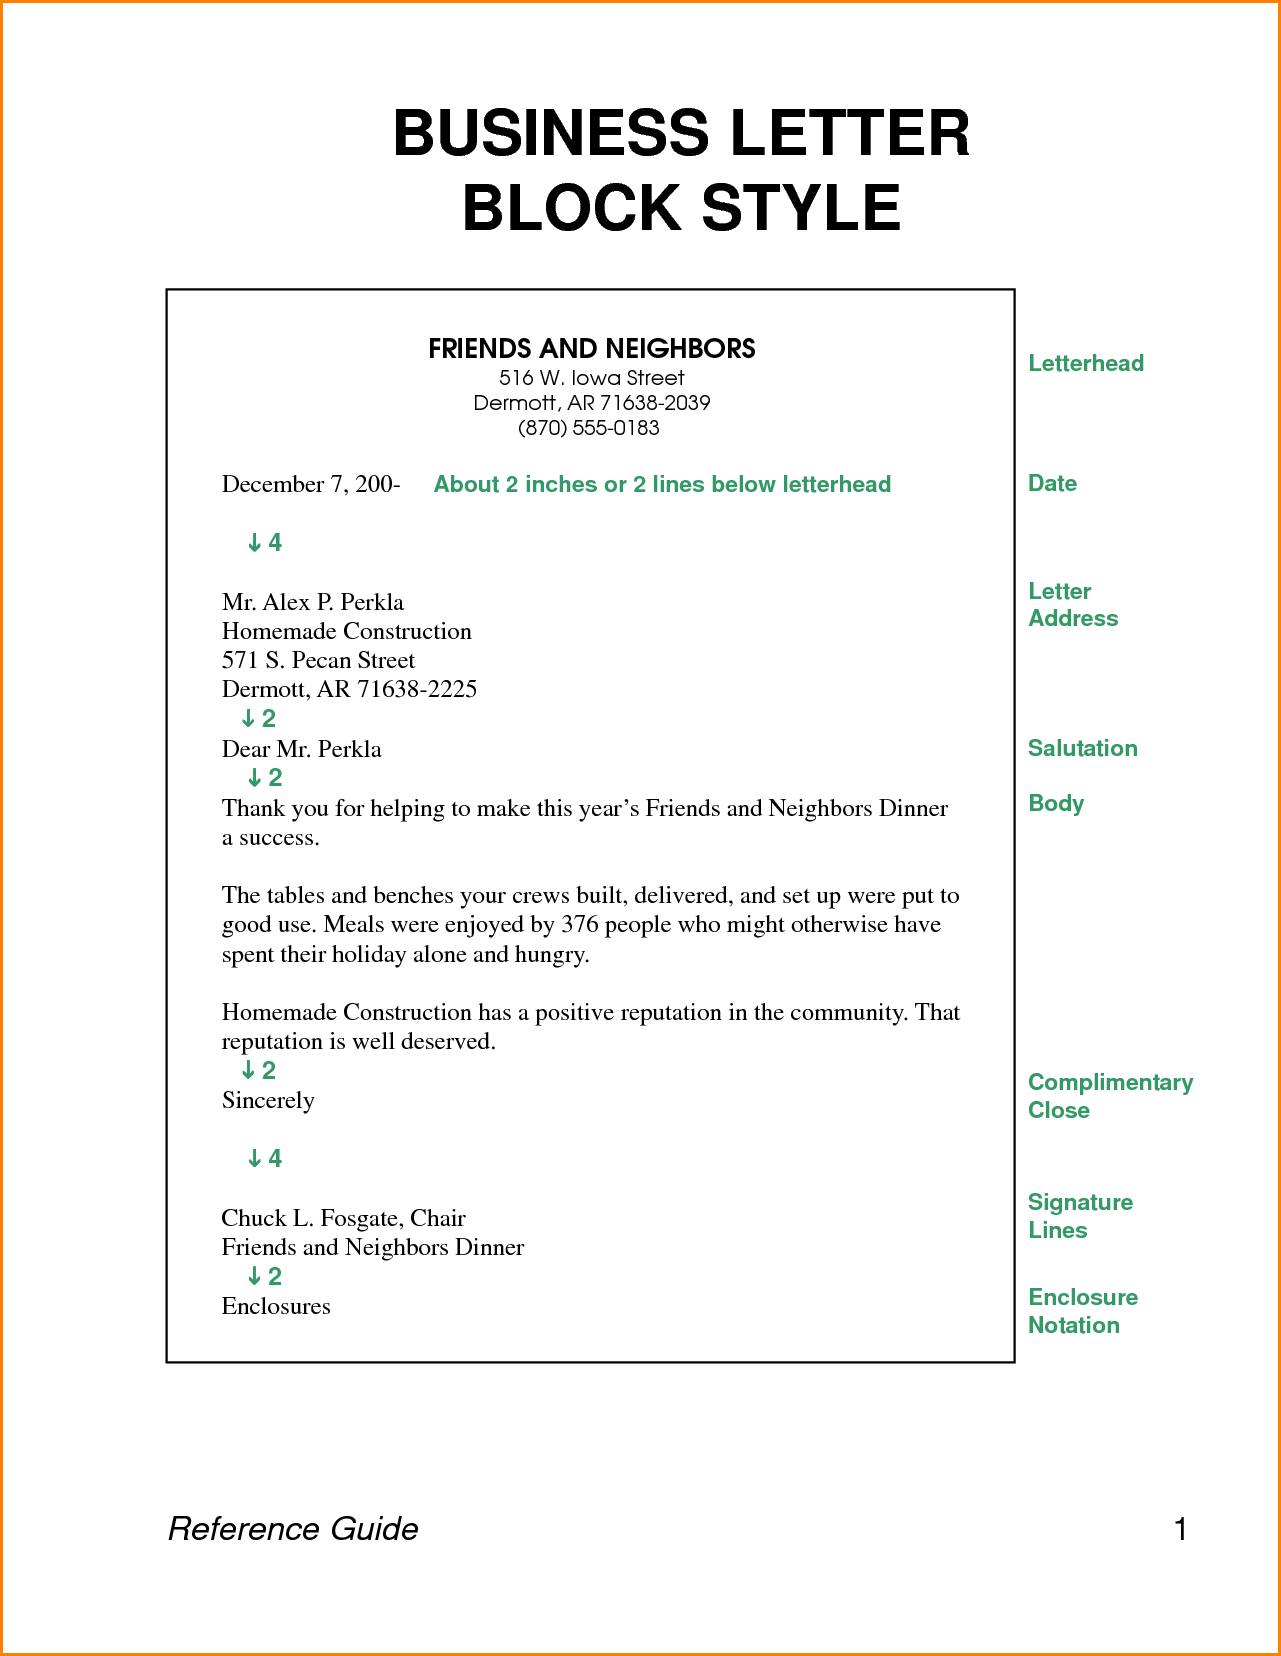 Business letter block style letters format download free documents business letter block style letters format download free documents pdf word spiritdancerdesigns Image collections